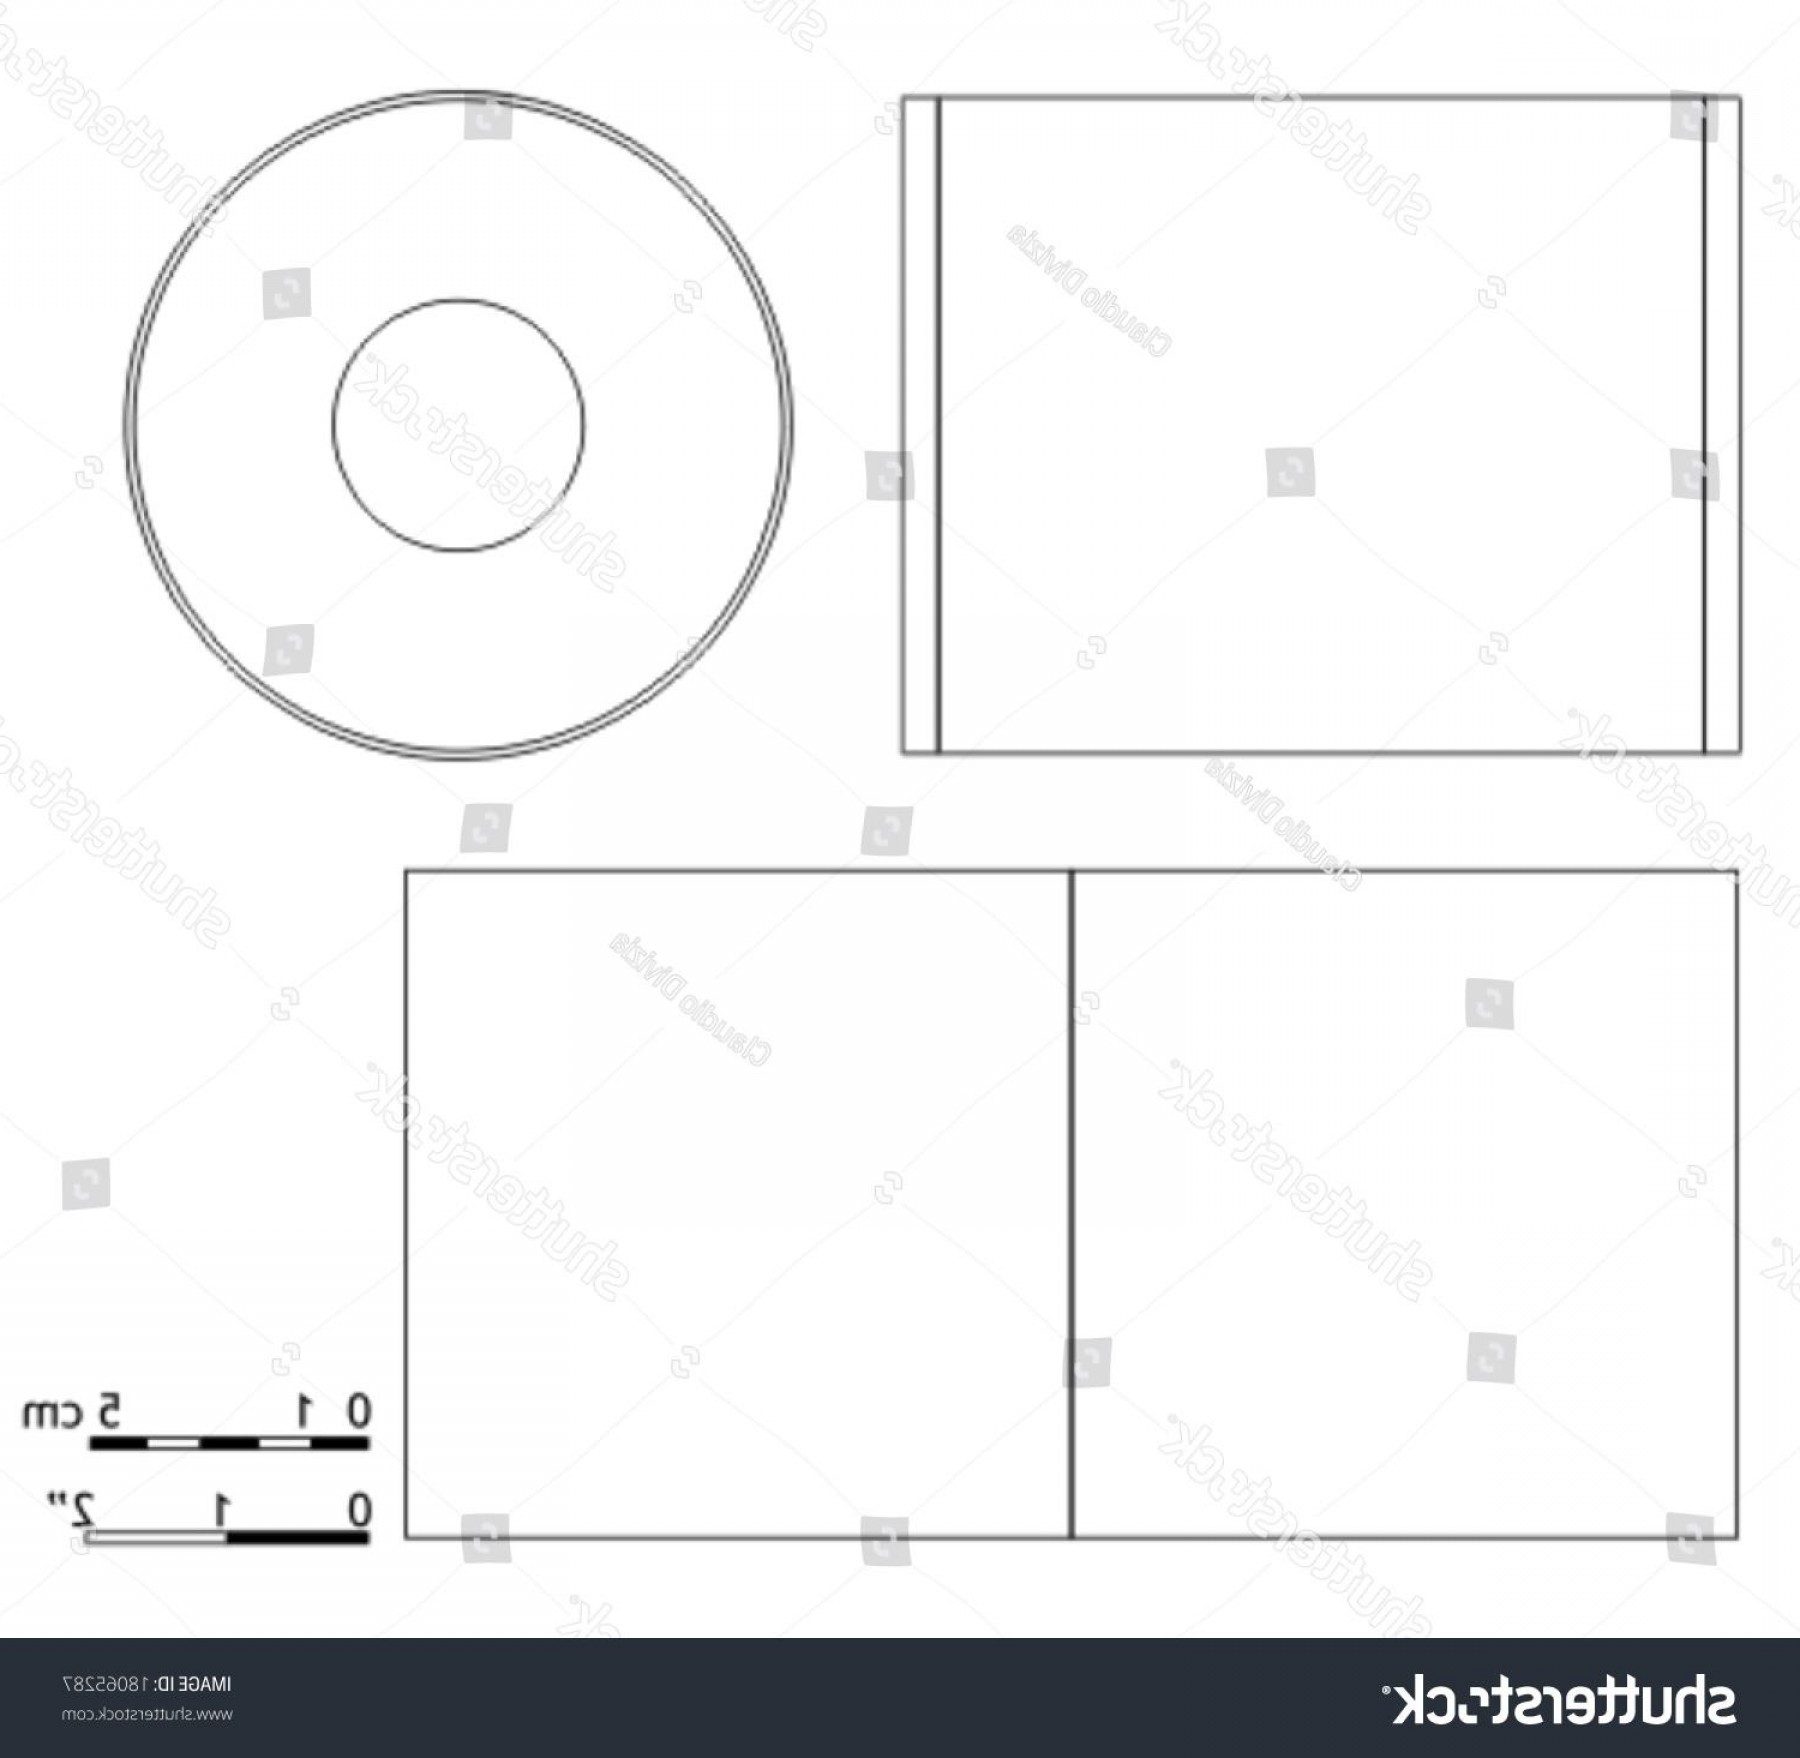 CD Label Template Vector: Templates For Cd Labels Example Blank Cd Dvd Cover Template Stock Vector Shutterstock